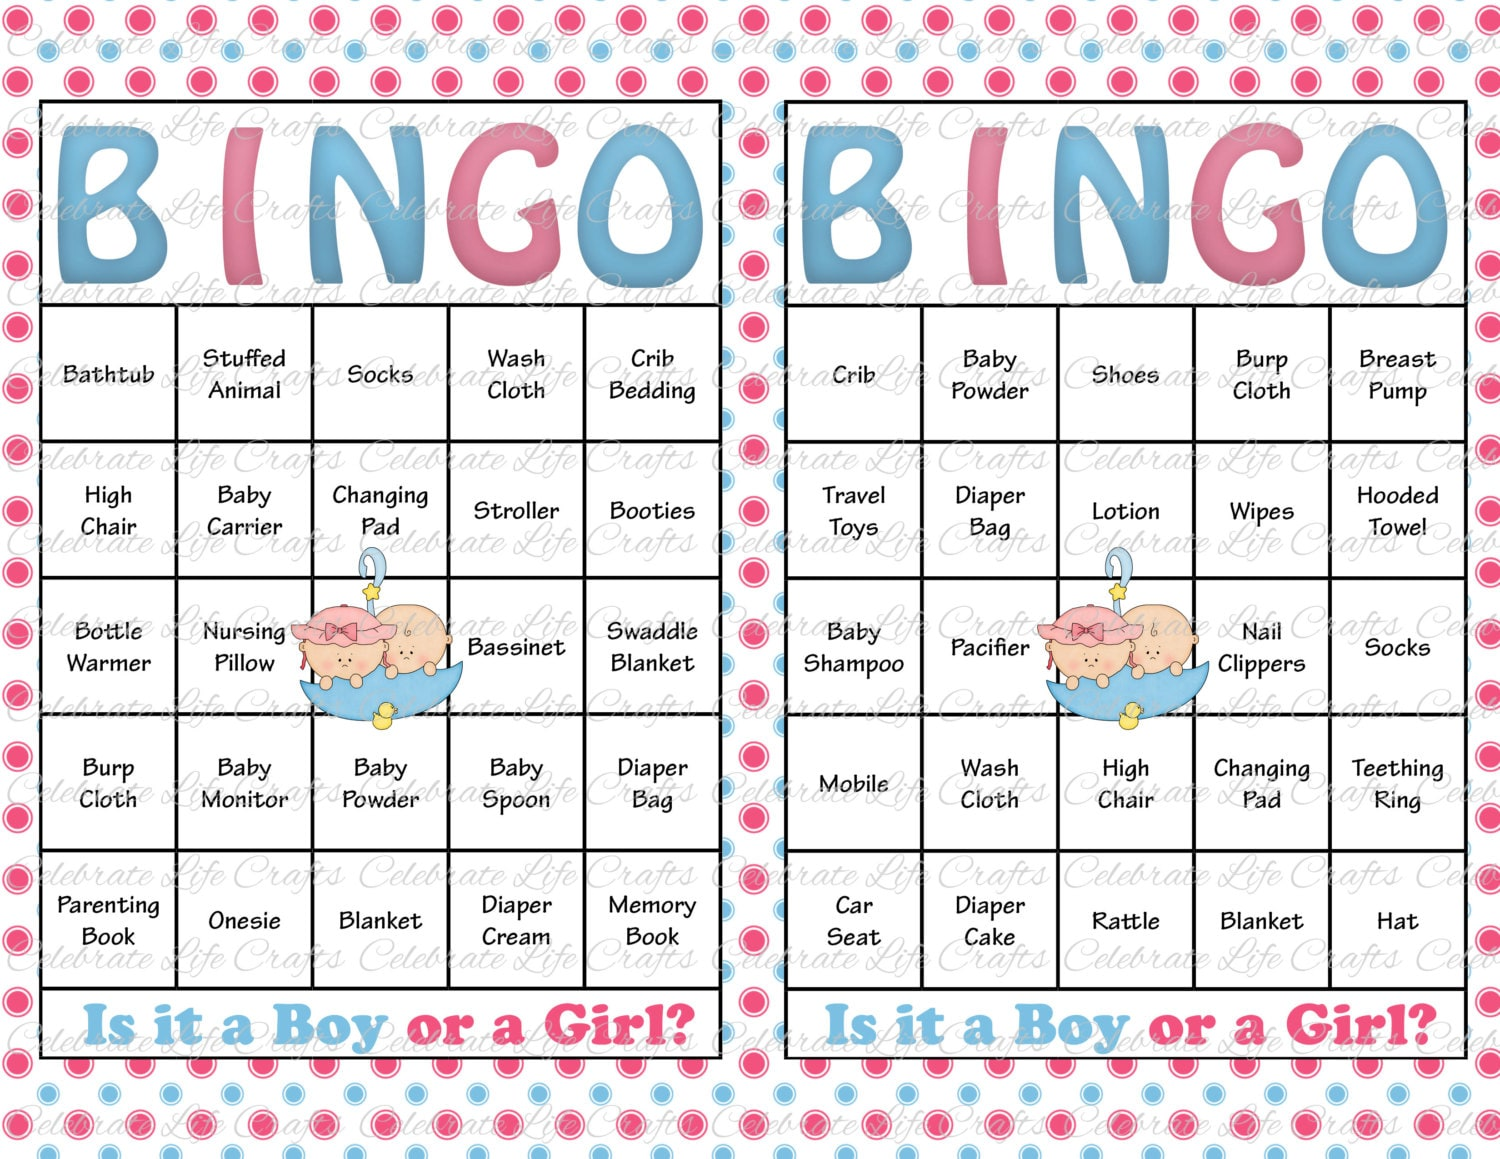 60 Baby Shower Bingo Cards Printable Party Gender Reveal Etsy